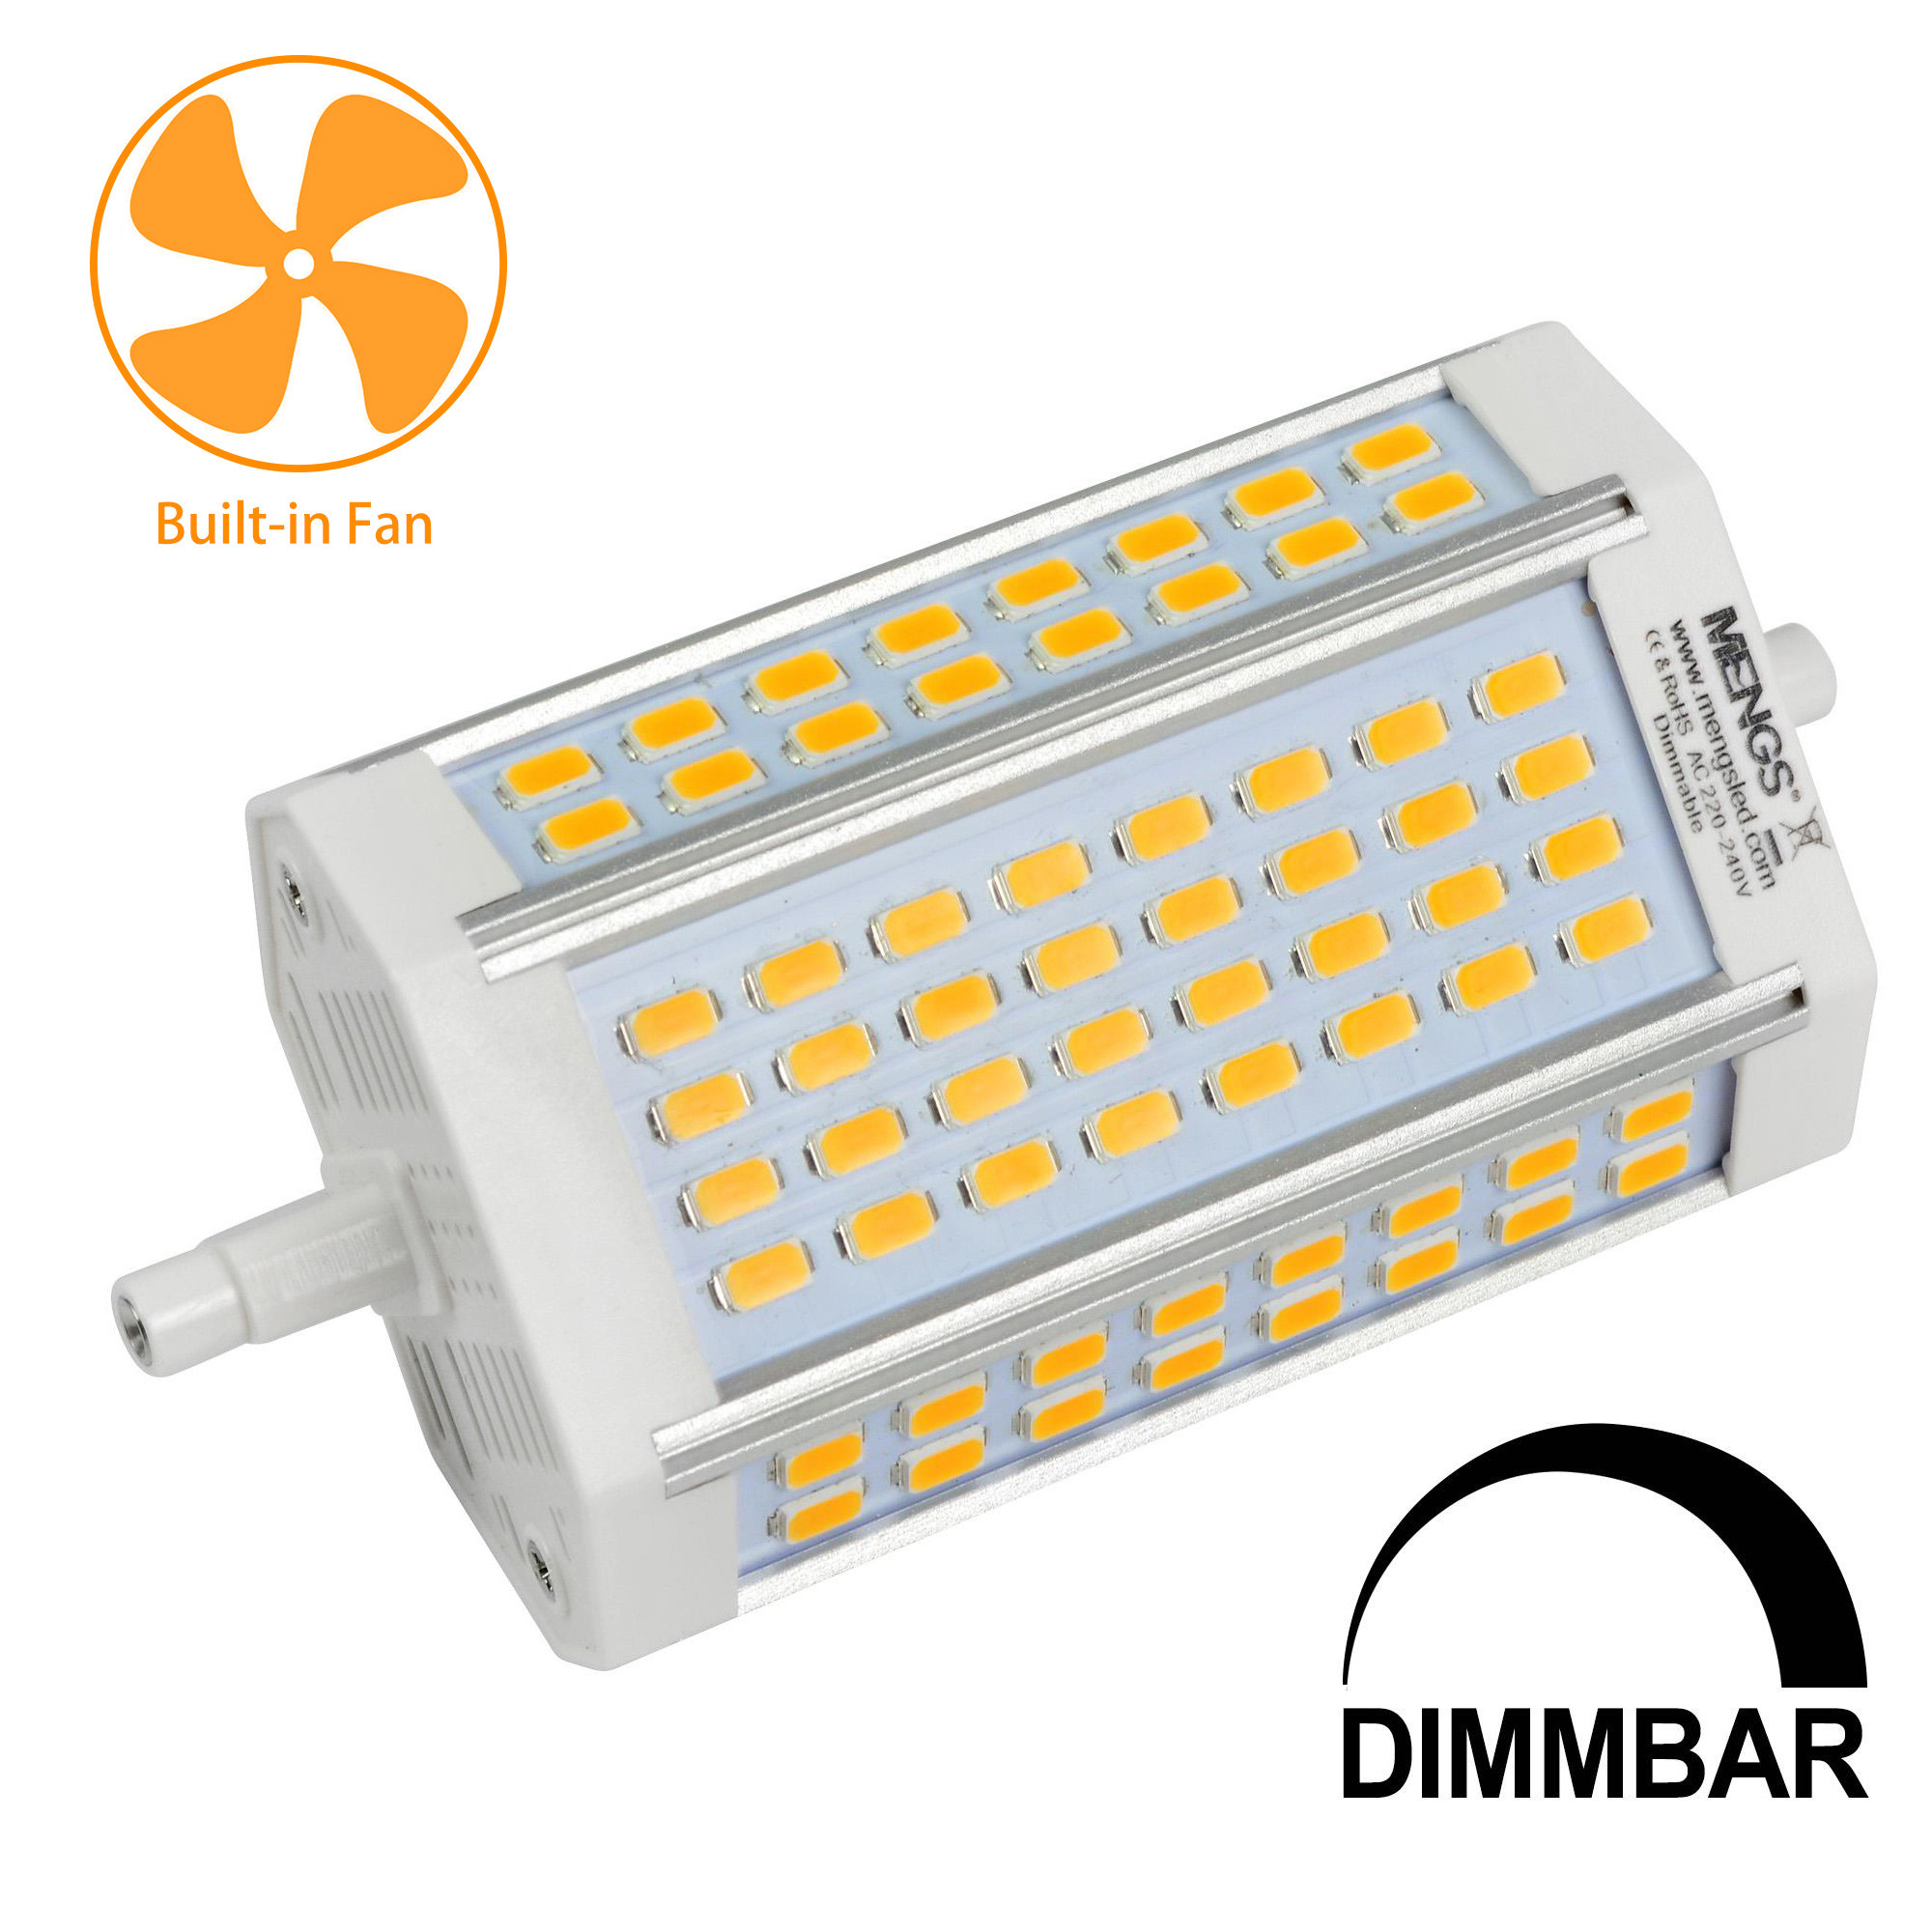 MENGS® R7s 30W LED Dimmable Flood Light 64x 5730 SMD With Cooling Fan LED Bulb Lamp AC 220-240V In Cool White Energy-Saving Light